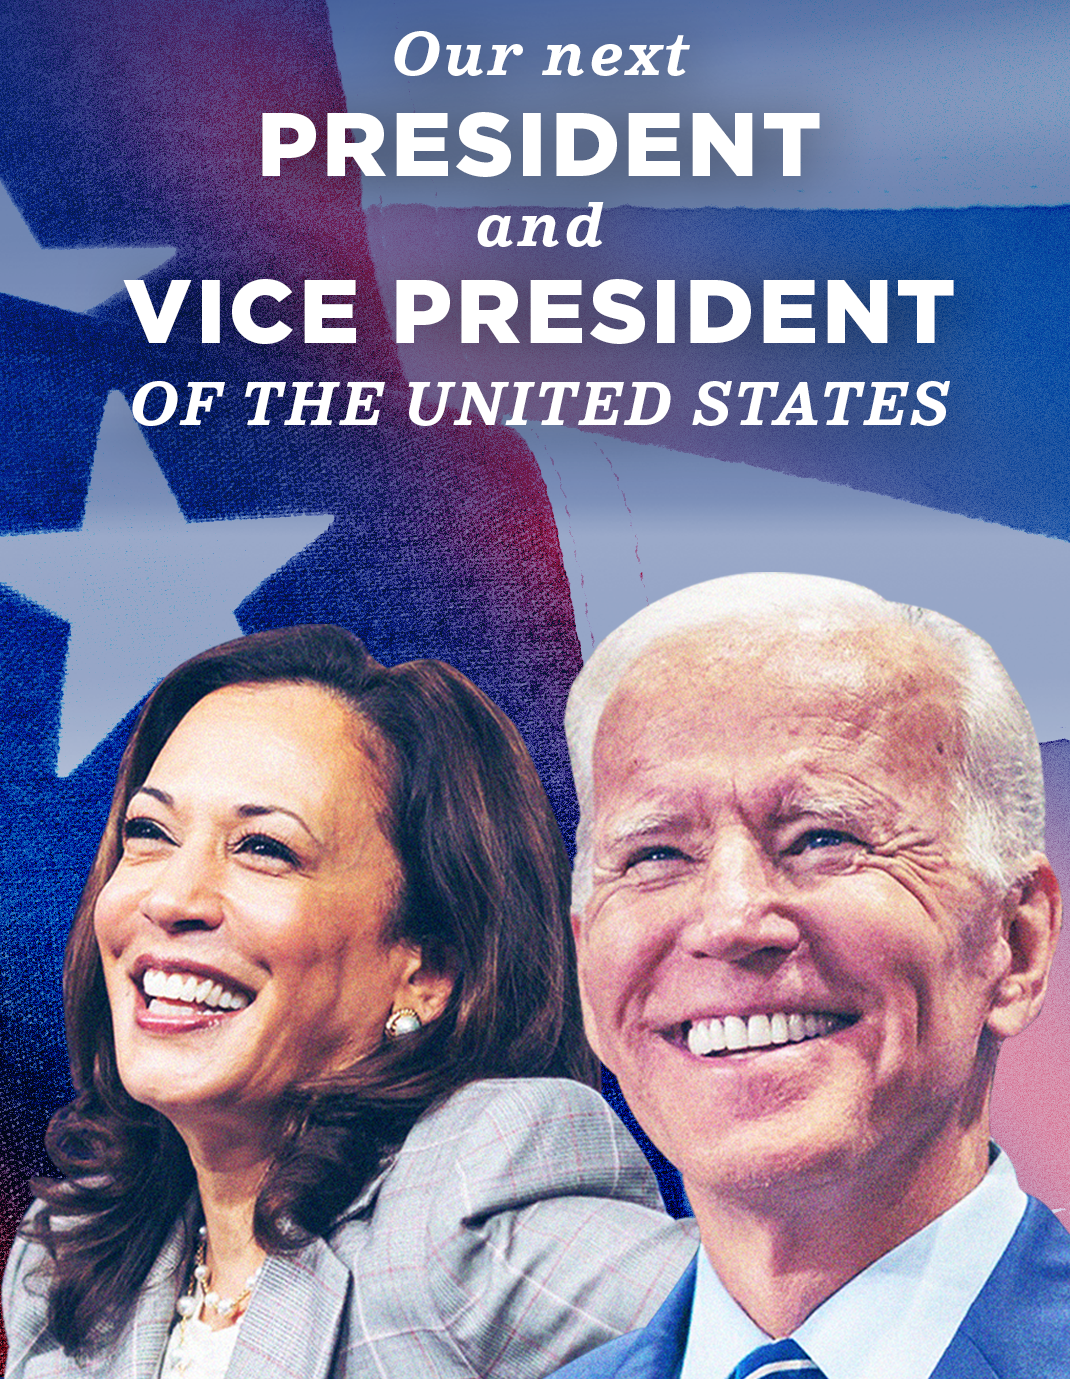 More Historic Nominations from the Incoming Biden/Harris Administration